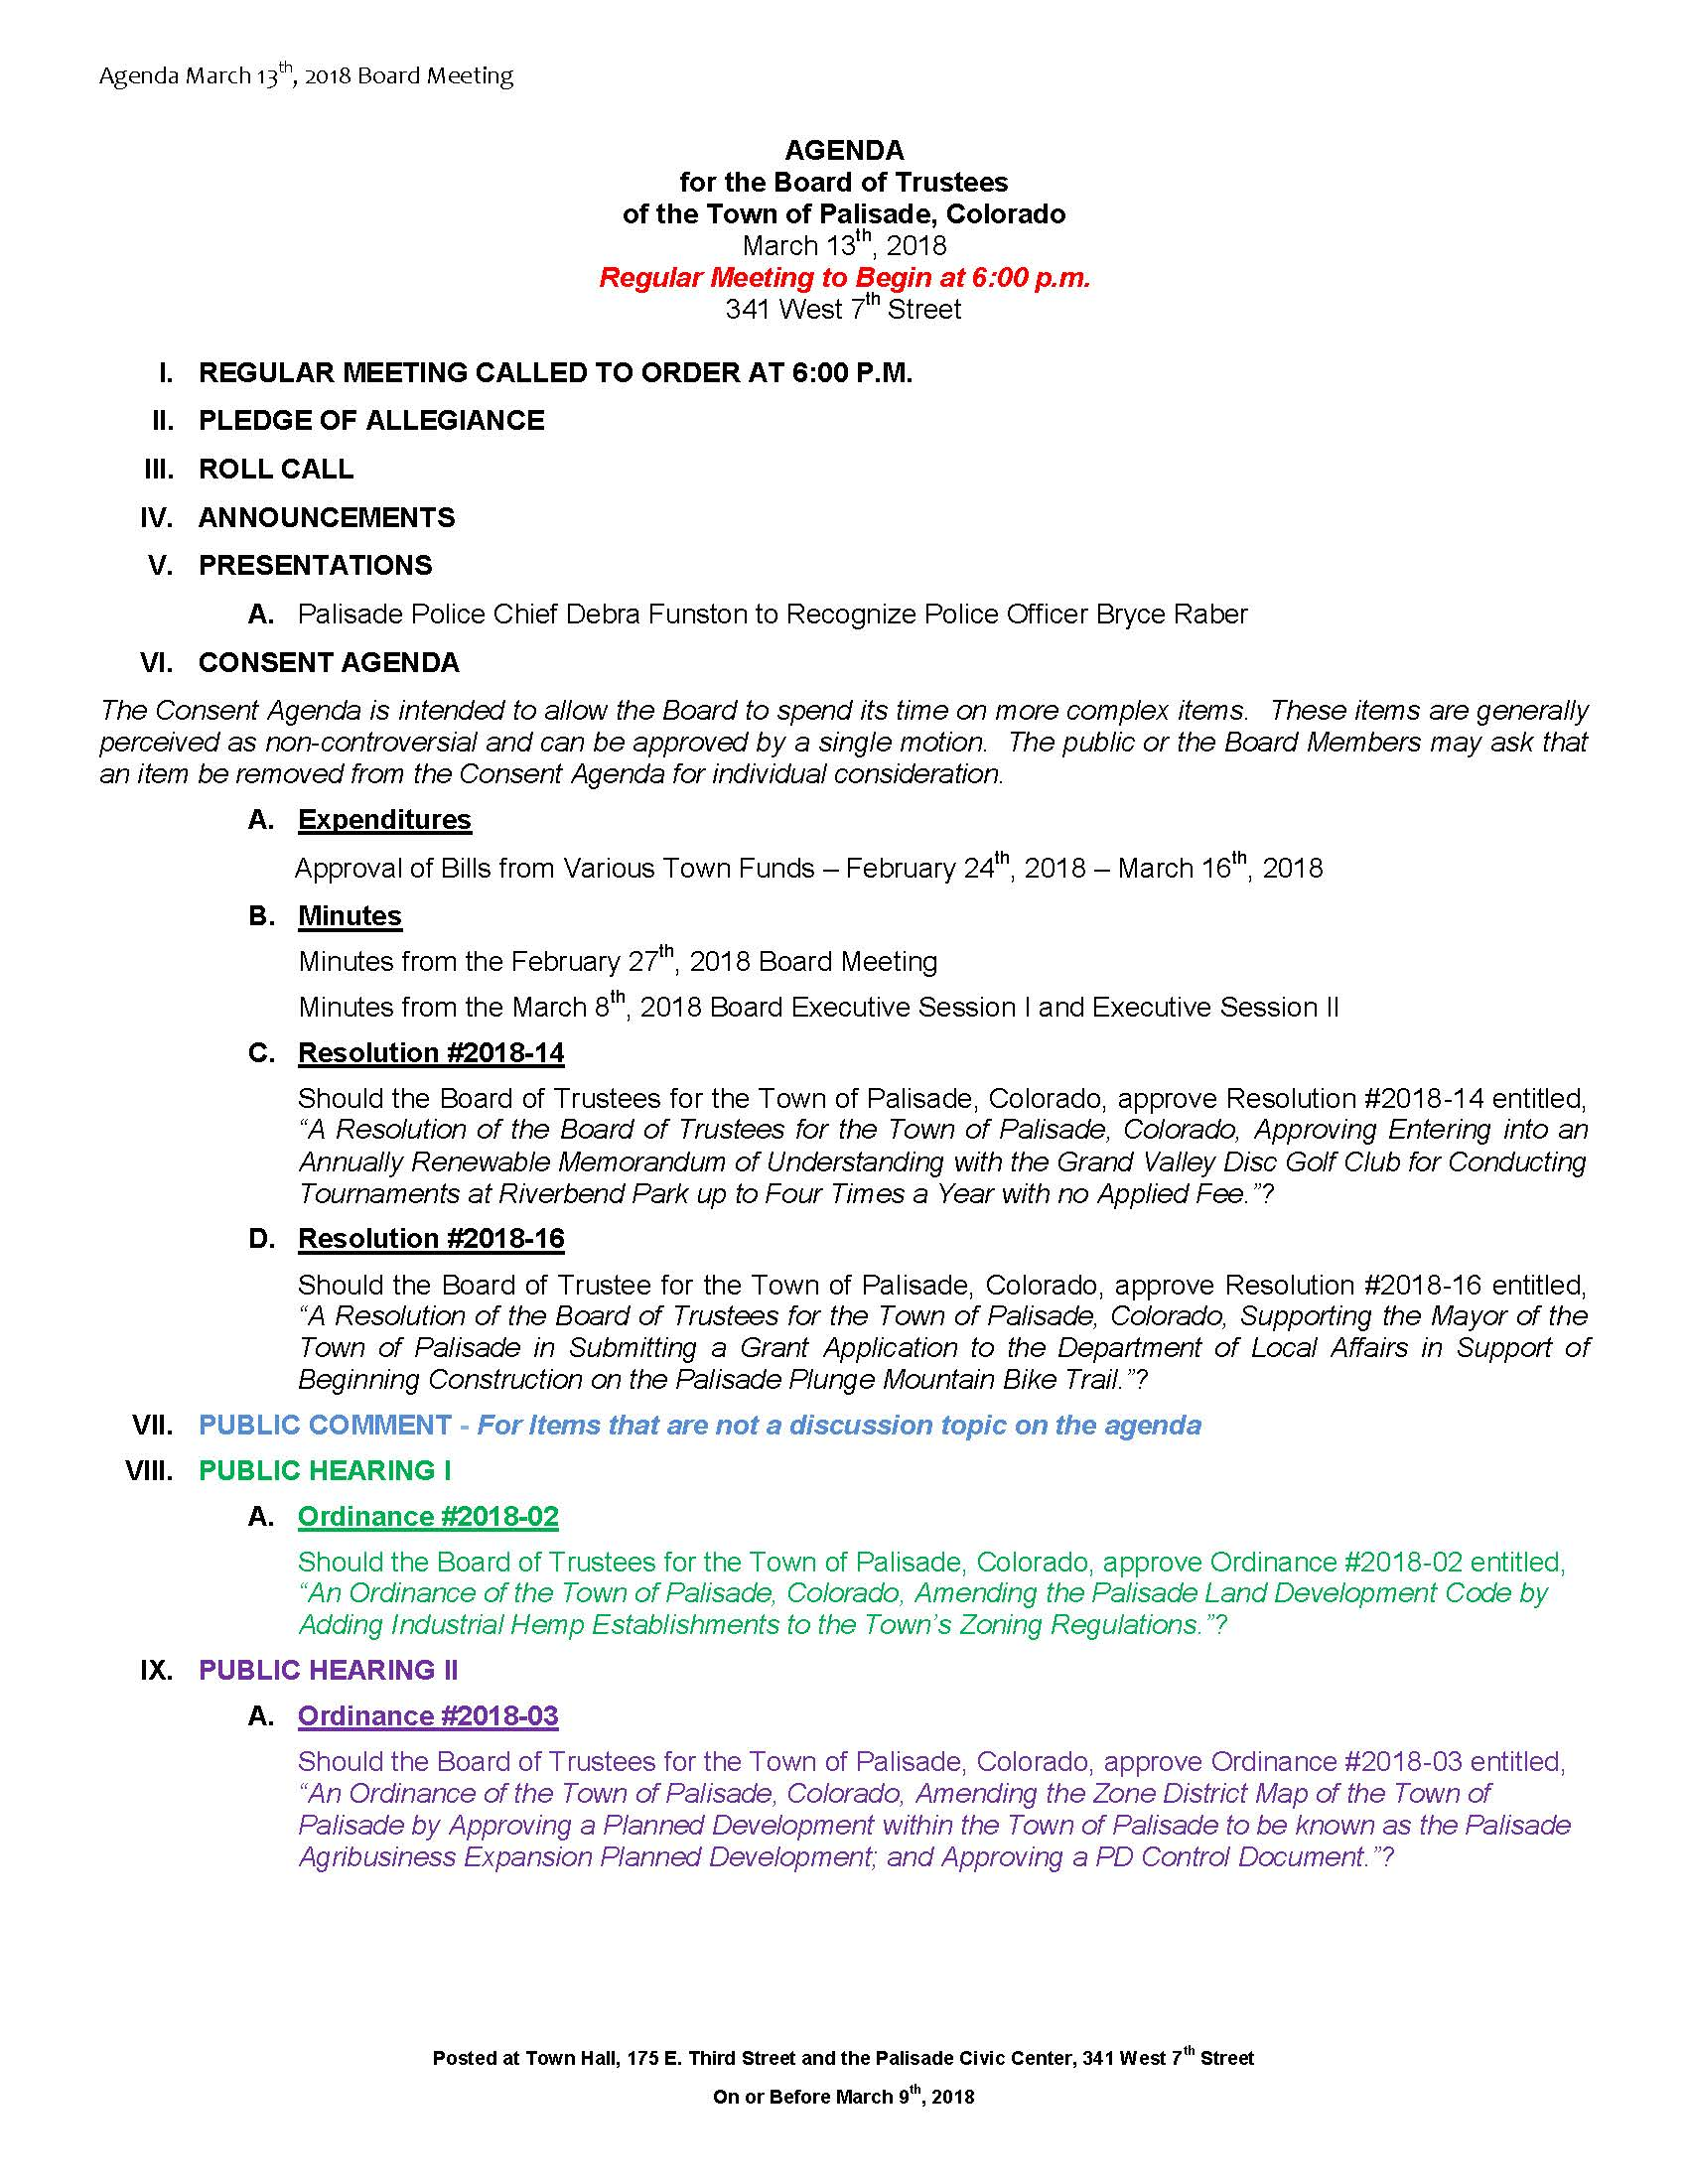 March 13th 2018 Board Meeting Agenda Page 1